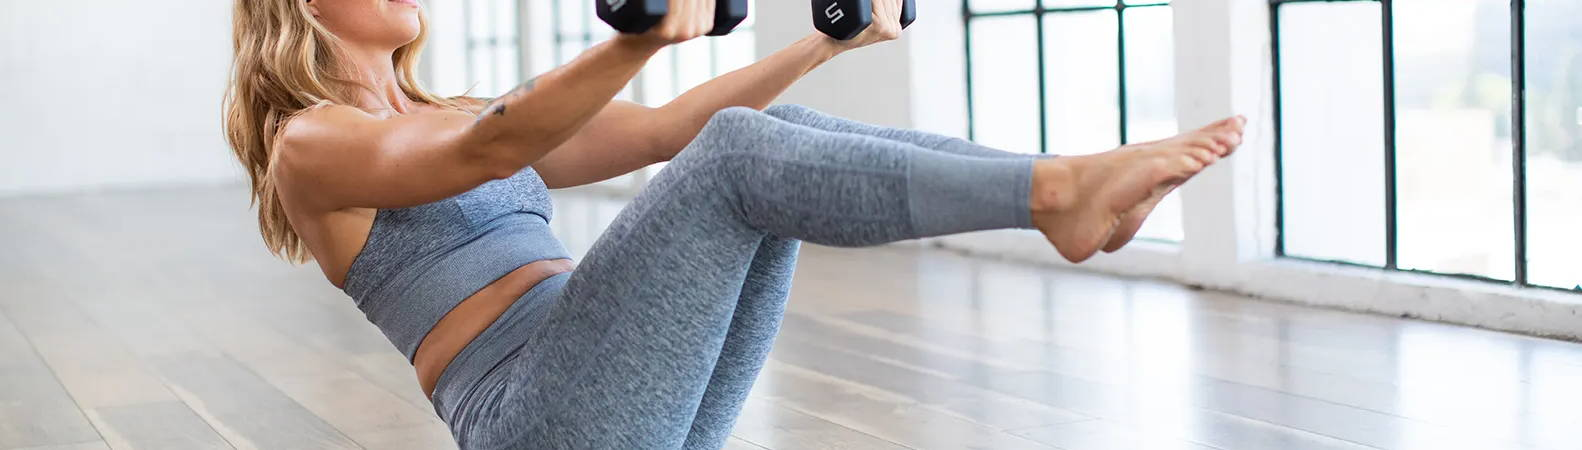 Shop Luxury Fitness Weights for Women Online at SPORTLES.com